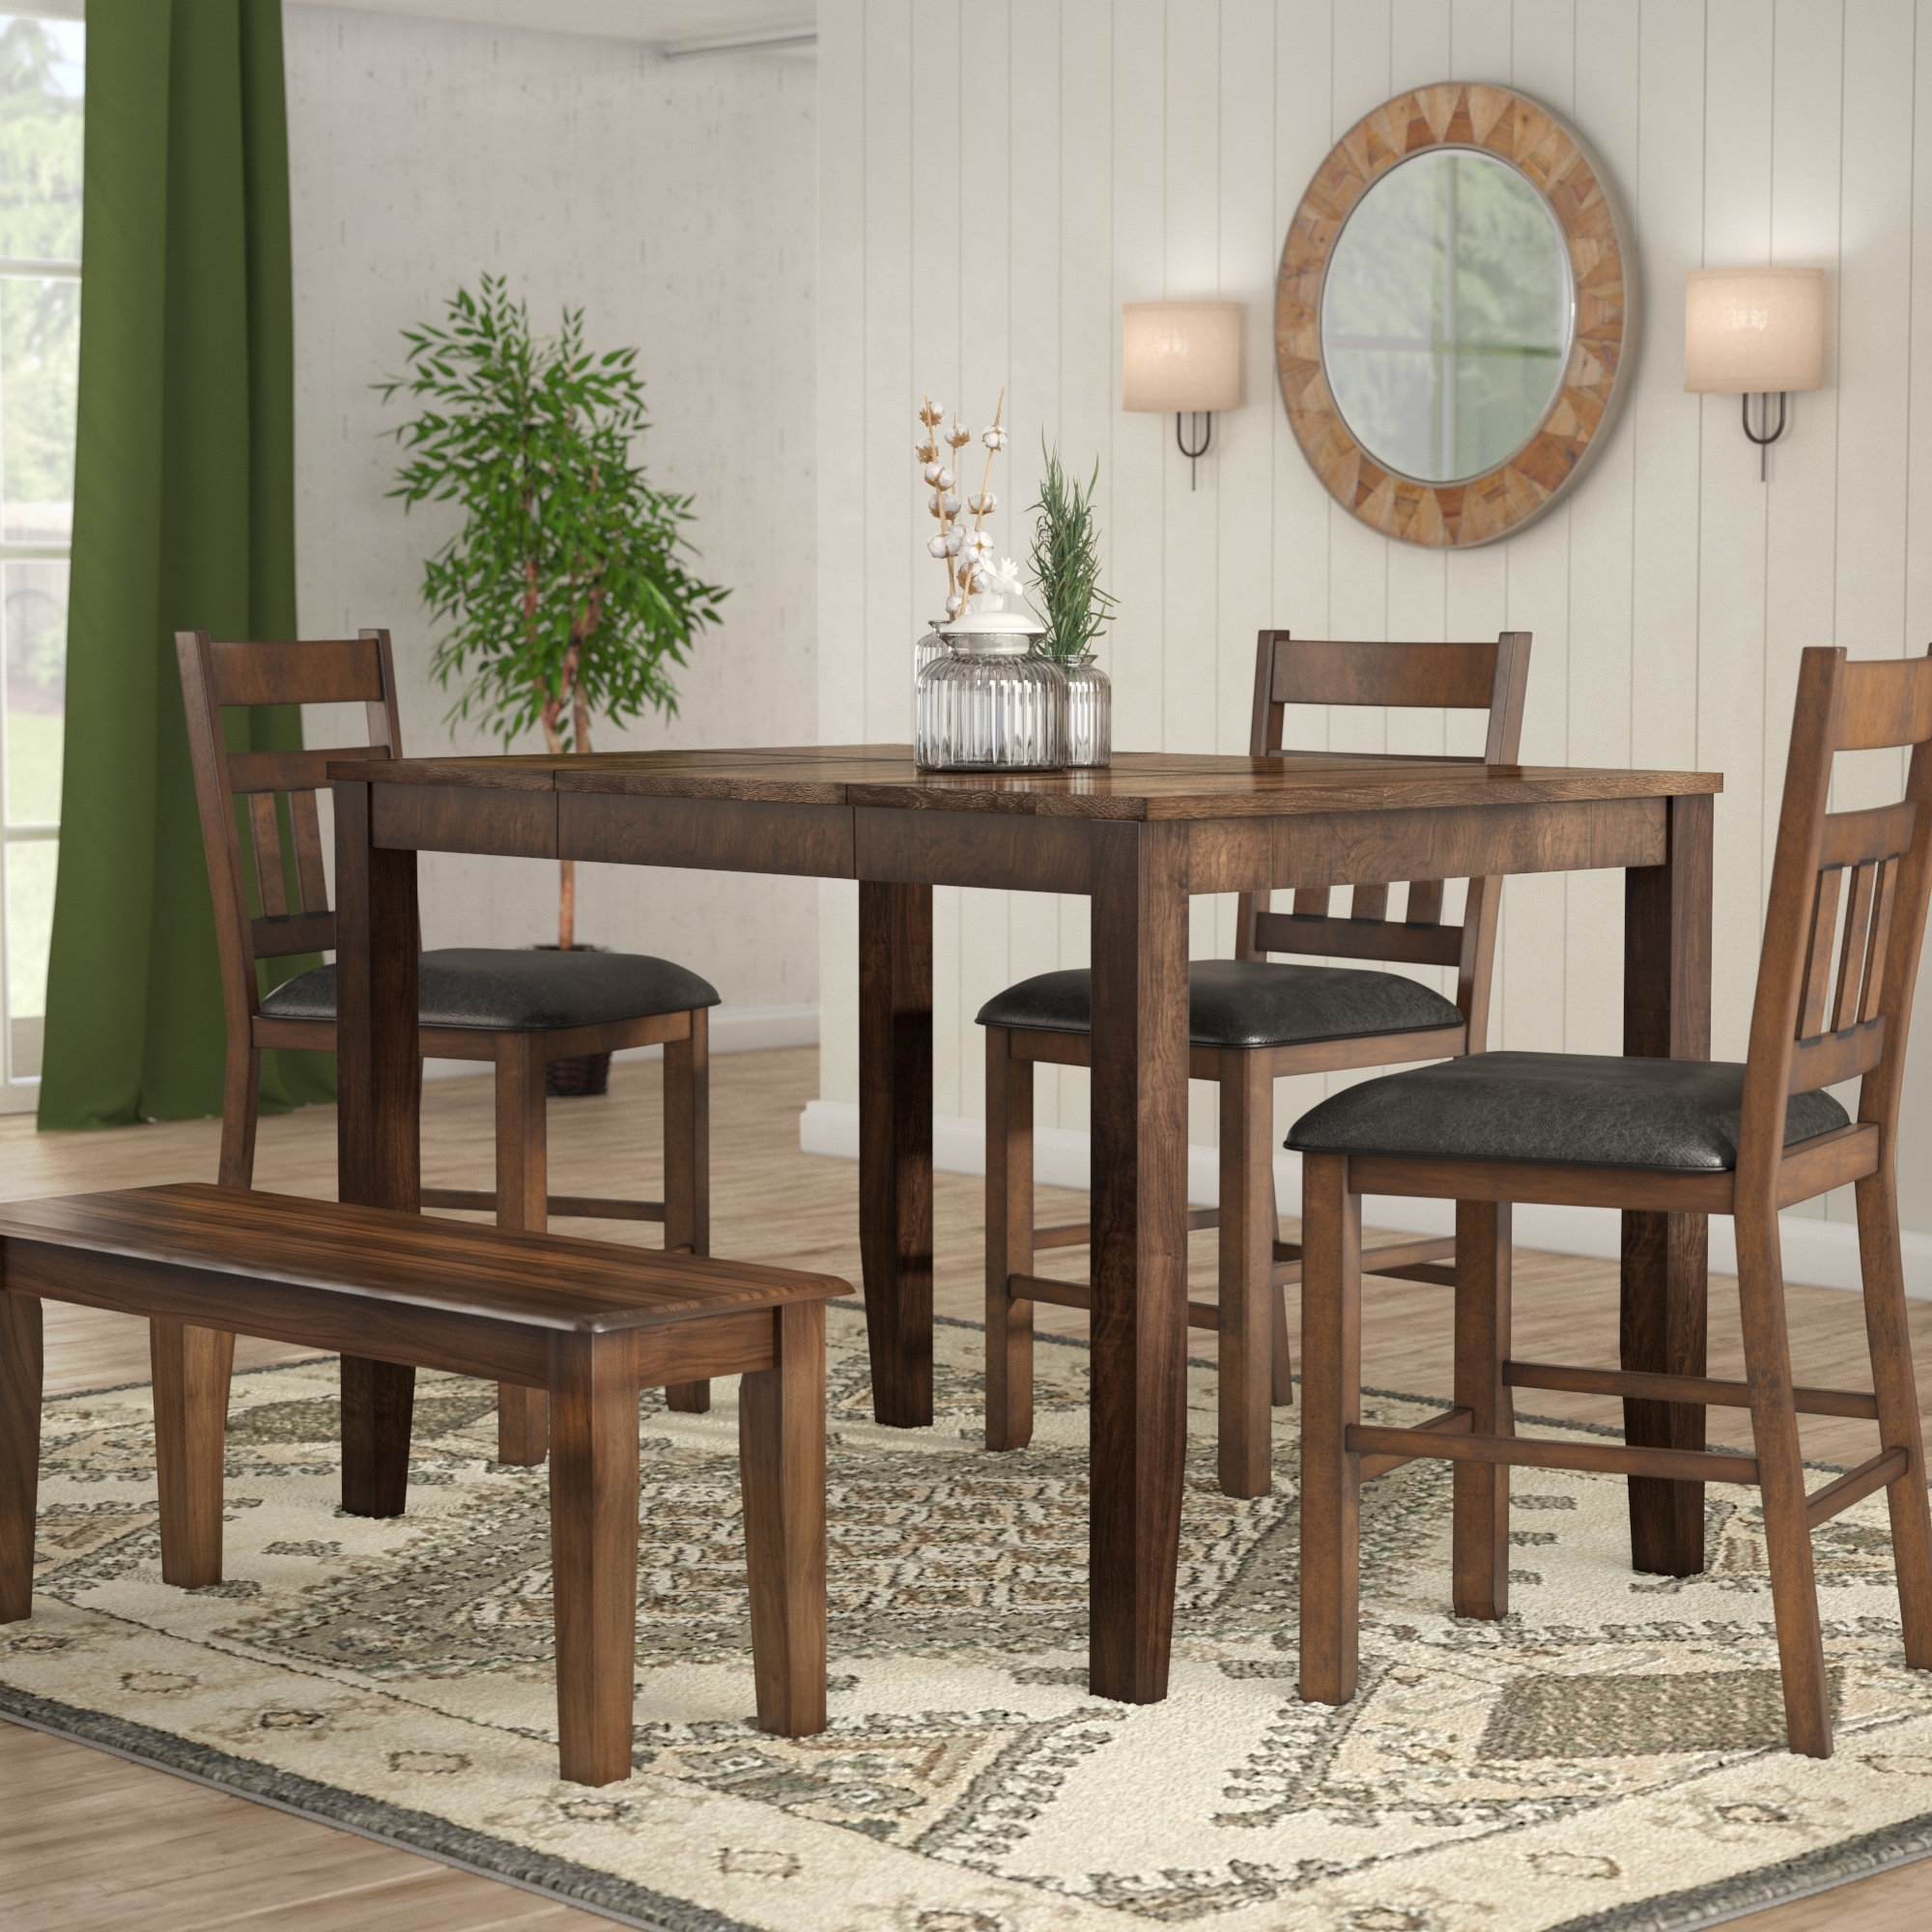 Wayfair Throughout Current Square Extendable Dining Tables (View 23 of 25)